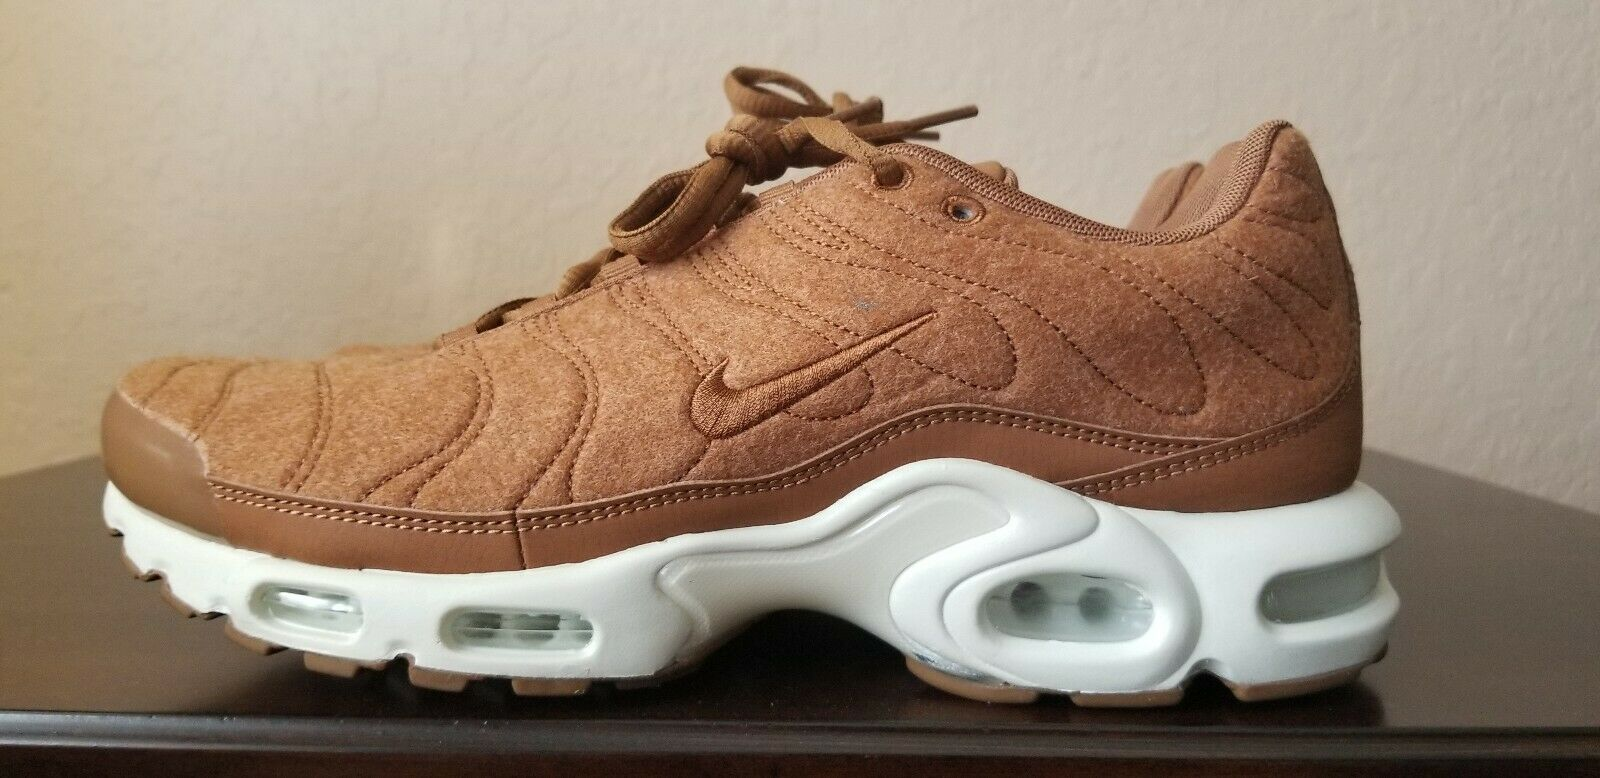 Nike Air Max Plus TN Running Quilted Brown Ale Wheat 806262-200 Men's Sz. 9.5